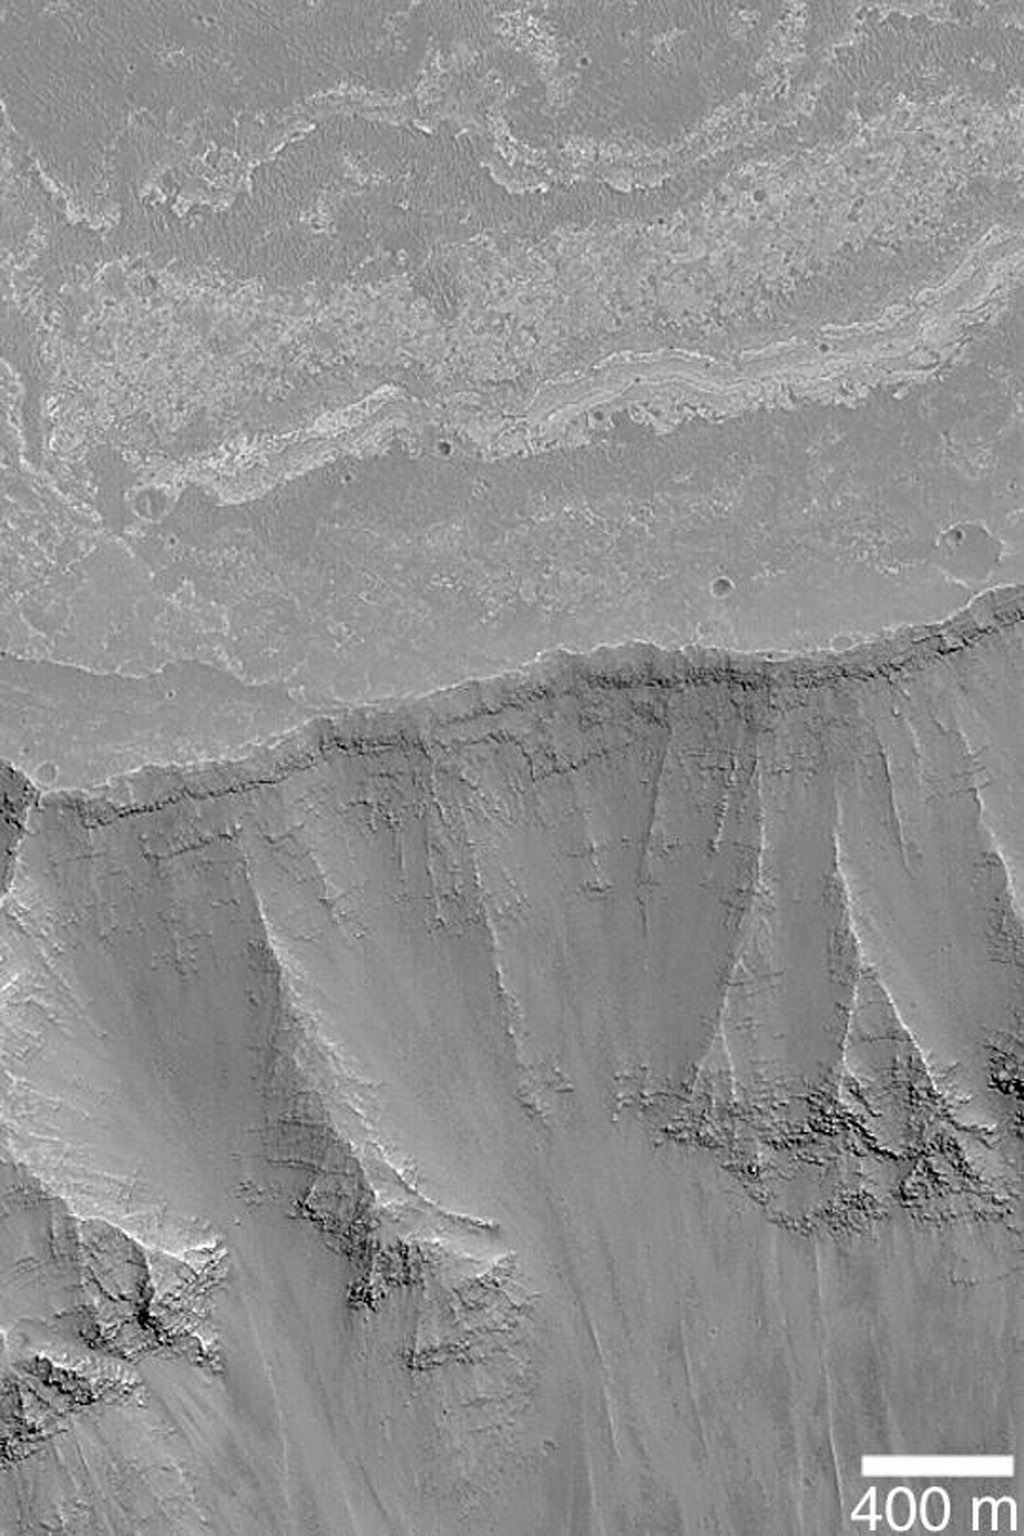 NASA's Mars Global Surveyor shows chasms and canyons cut through ancient, layered bedrock in West Candor, part of the vast Valles Marineris trough system on Mars.